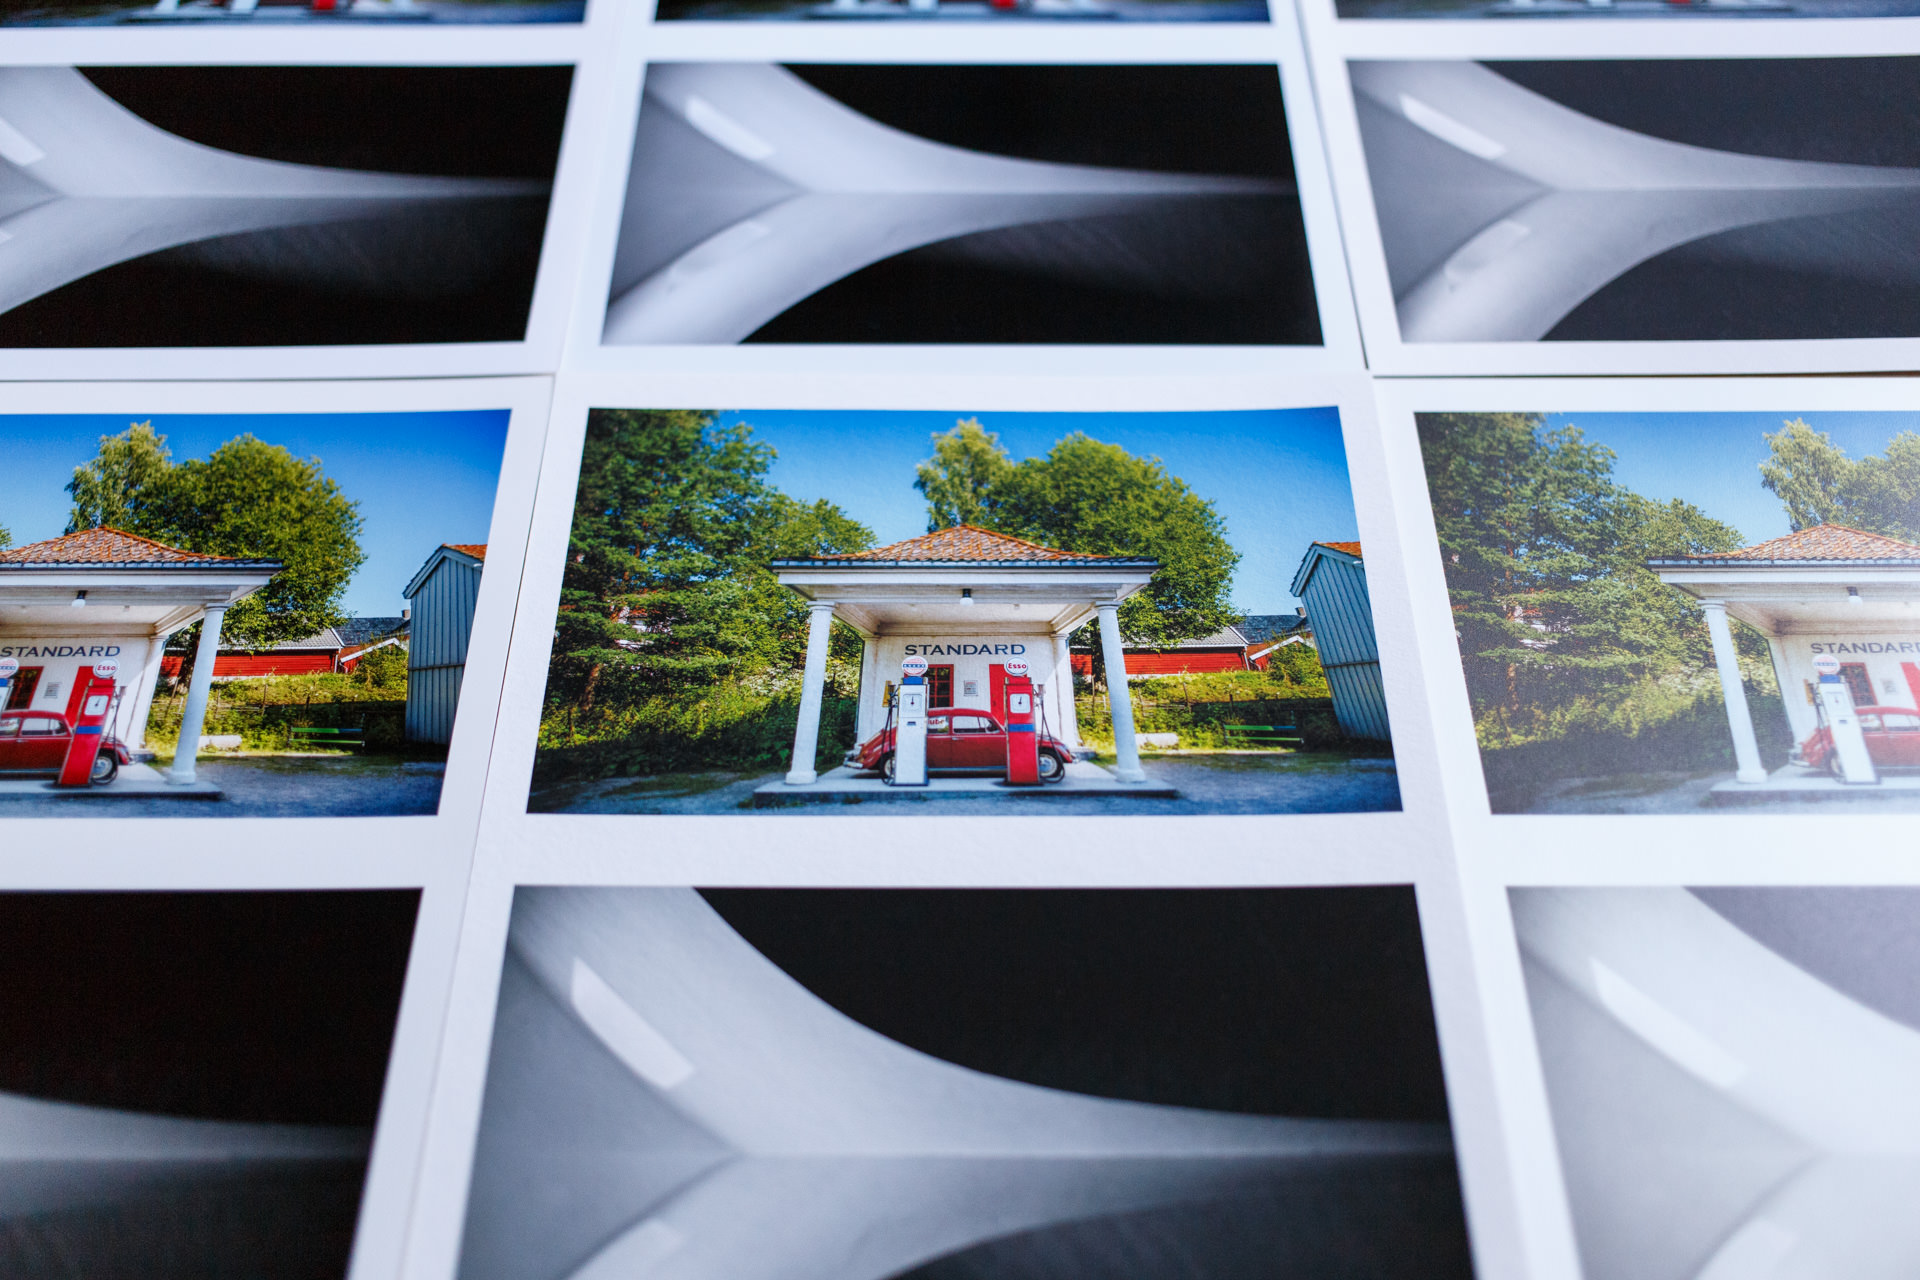 My test print photos from Oslo.